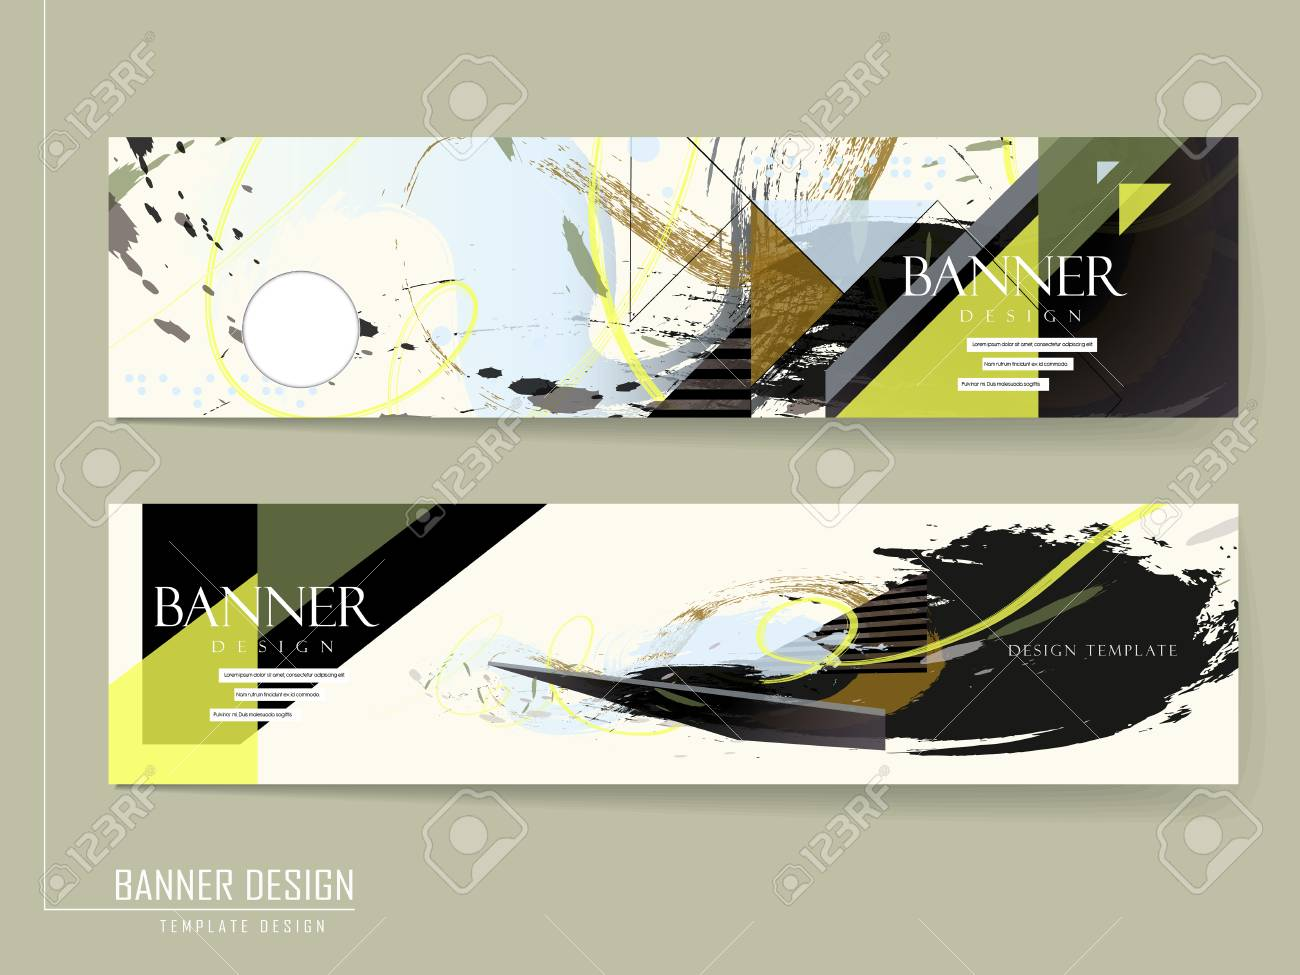 creative banner design with painting stroke in multicolor royalty free cliparts vectors and stock illustration image 37965042 123rf com